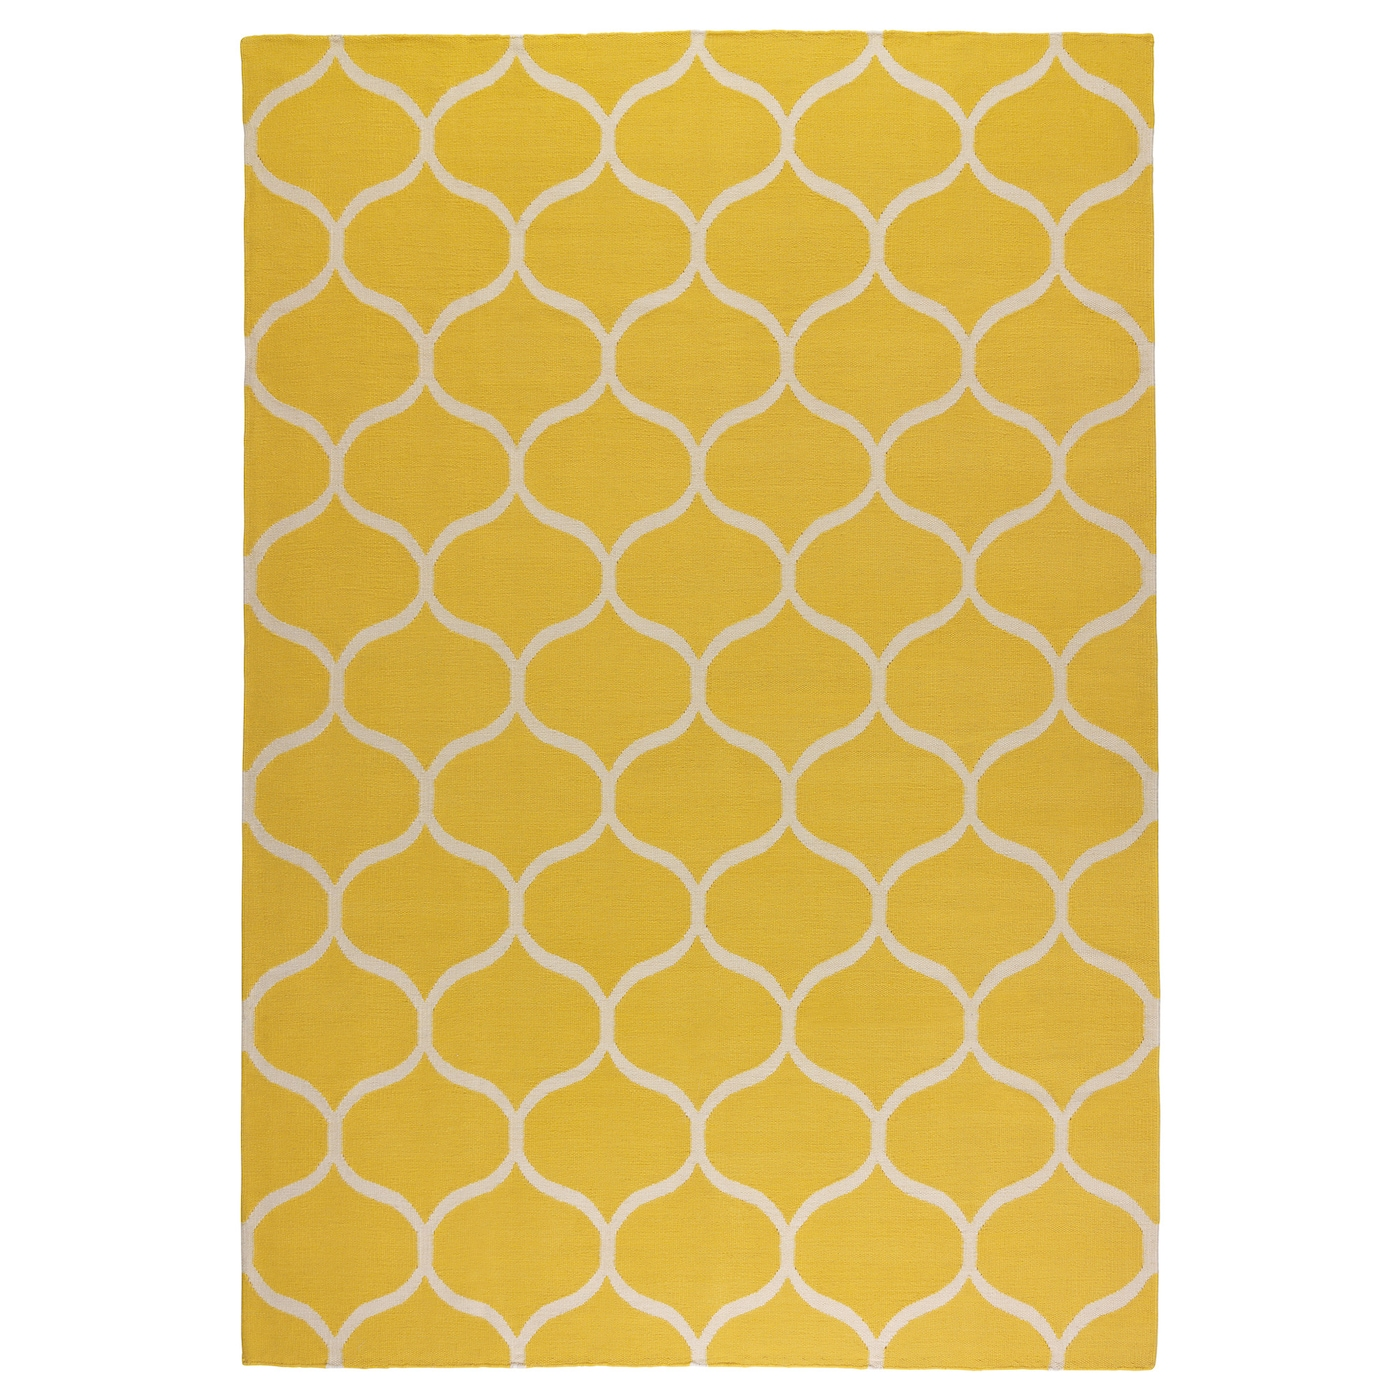 stockholm rug flatwoven handmade net pattern yellow